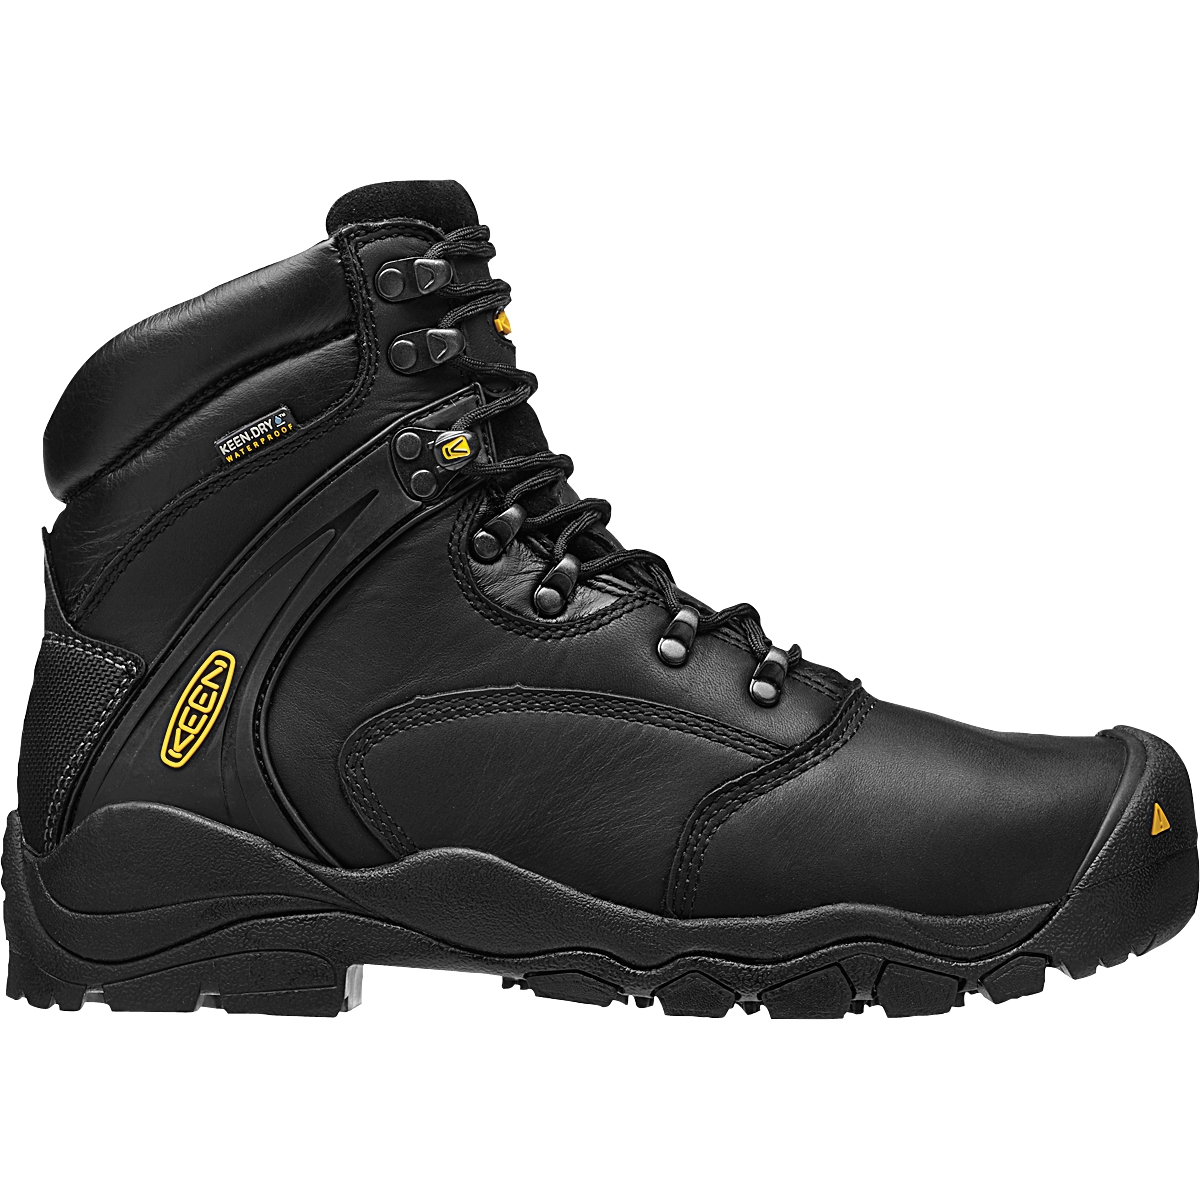 Safety Shoes Steel Toe Waterproof